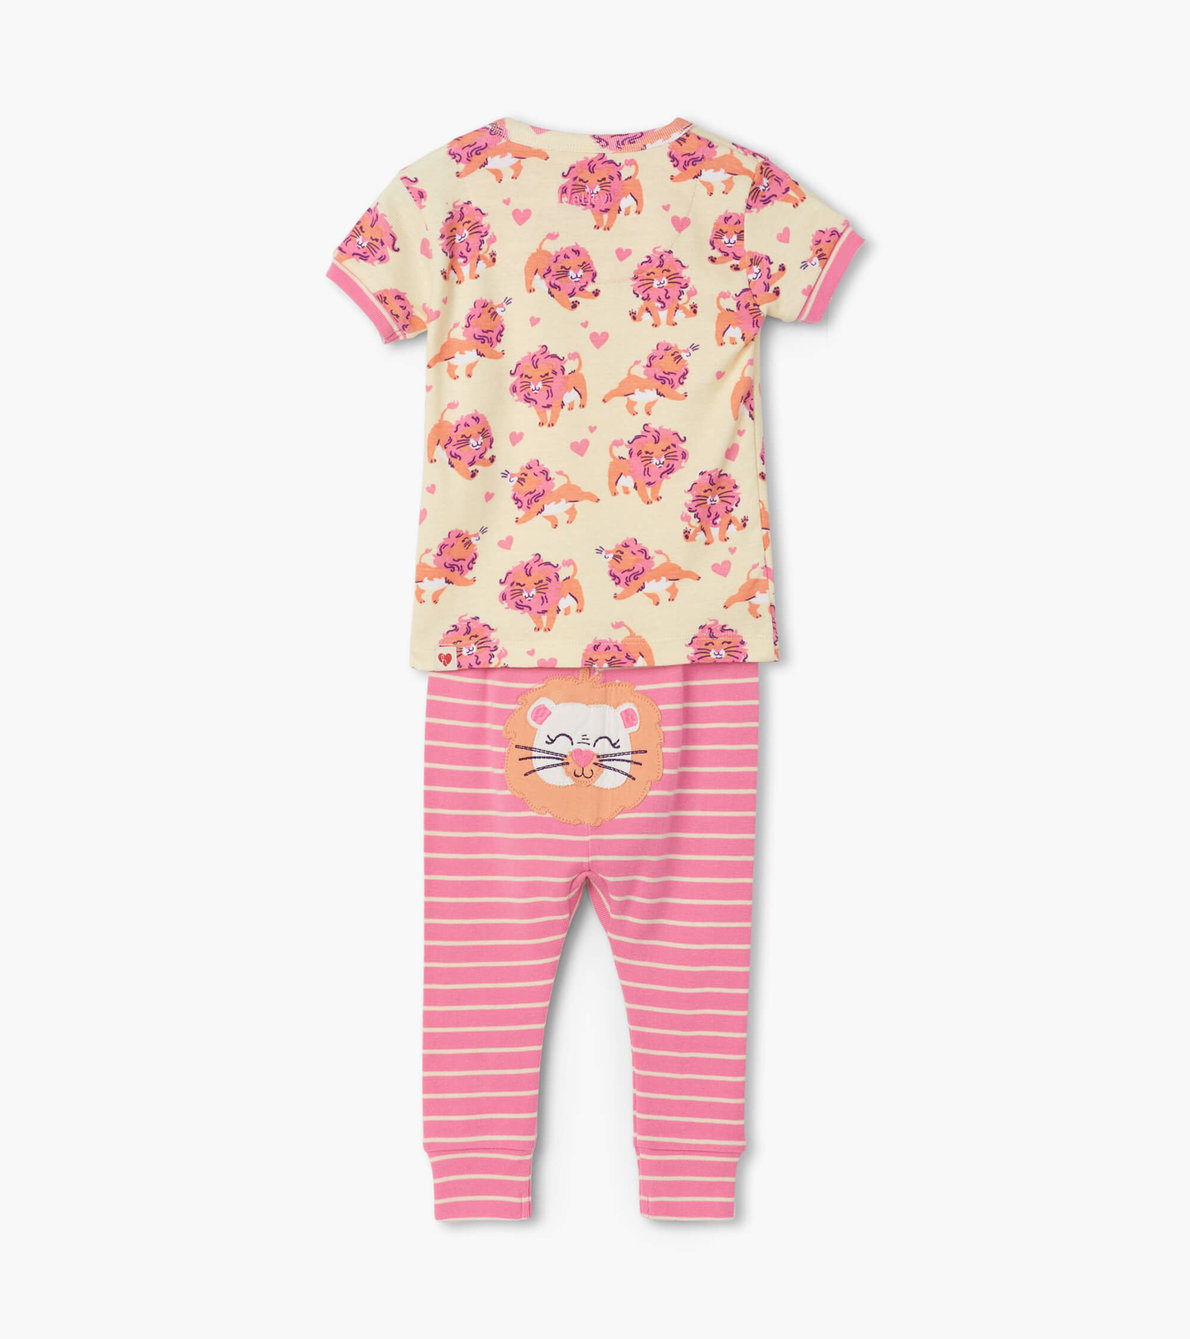 View larger image of Lovely Lions Organic Cotton Baby Short Sleeve Pajama Set